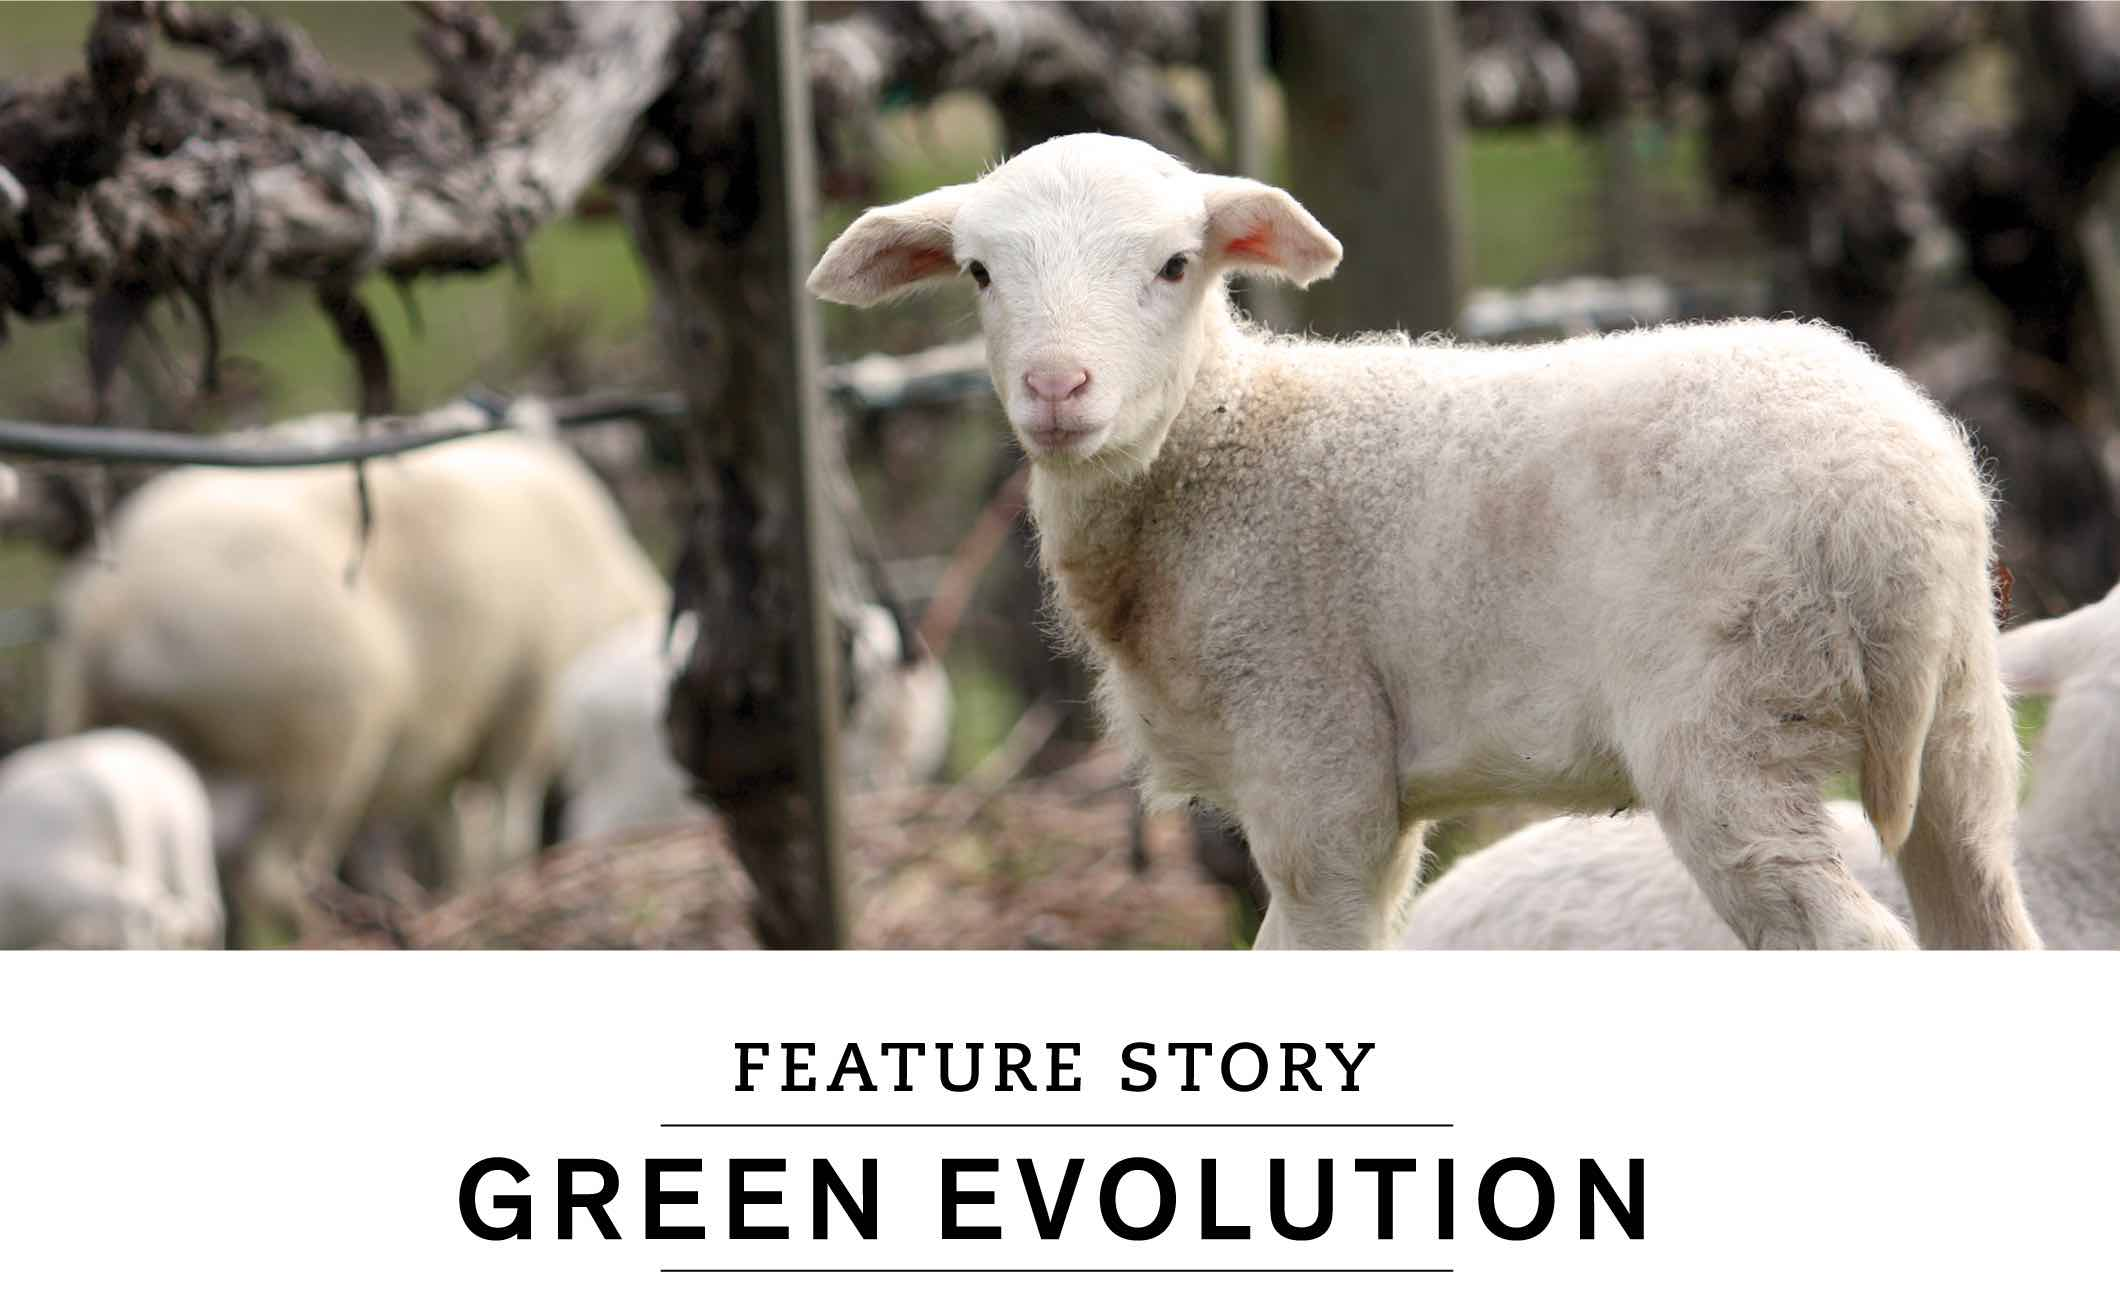 FEATURE STORY: GREEN EVOLUTION